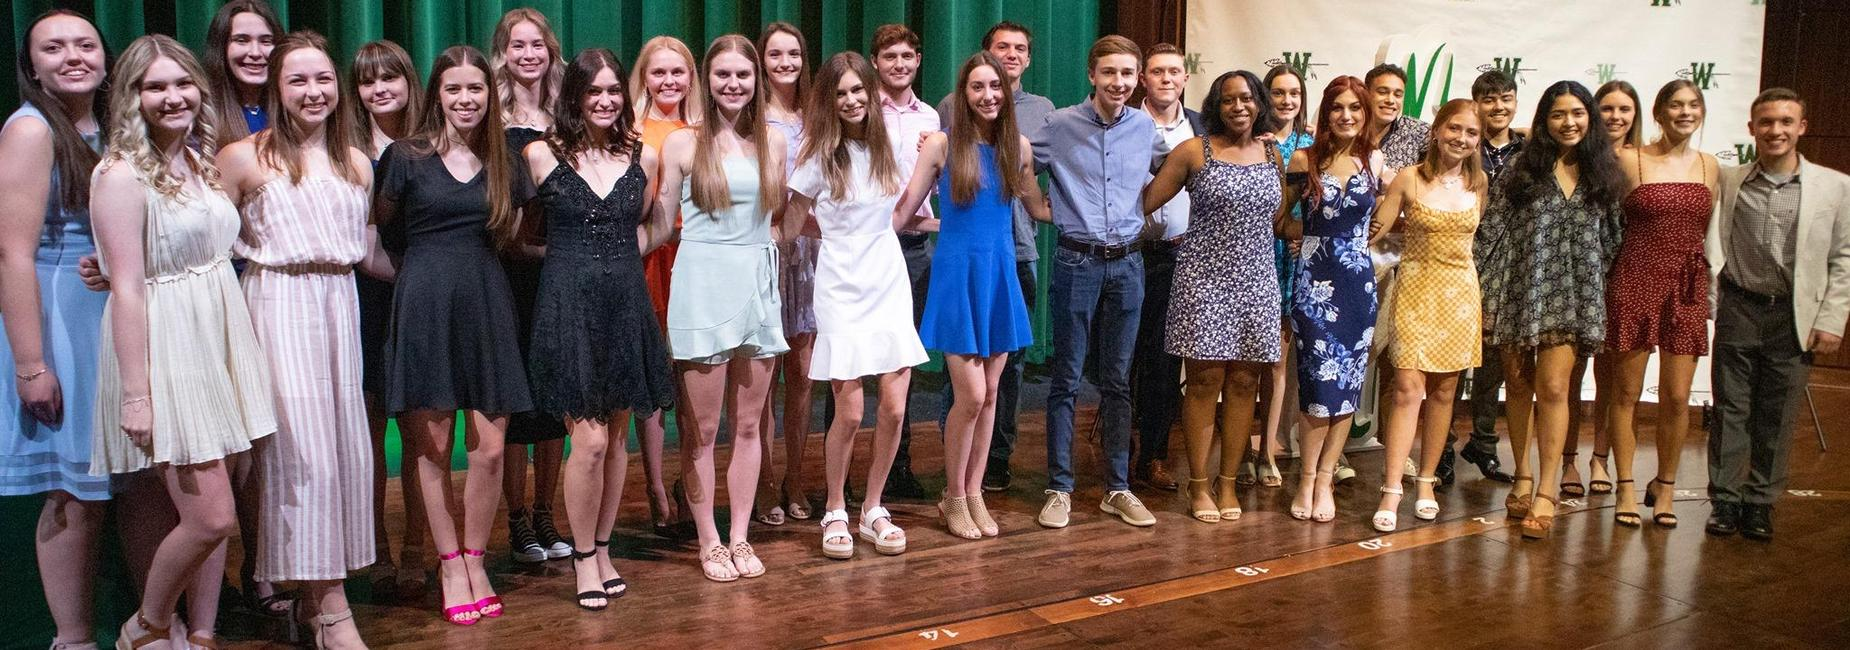 group of 24 girls & 6 boys pose together on stage